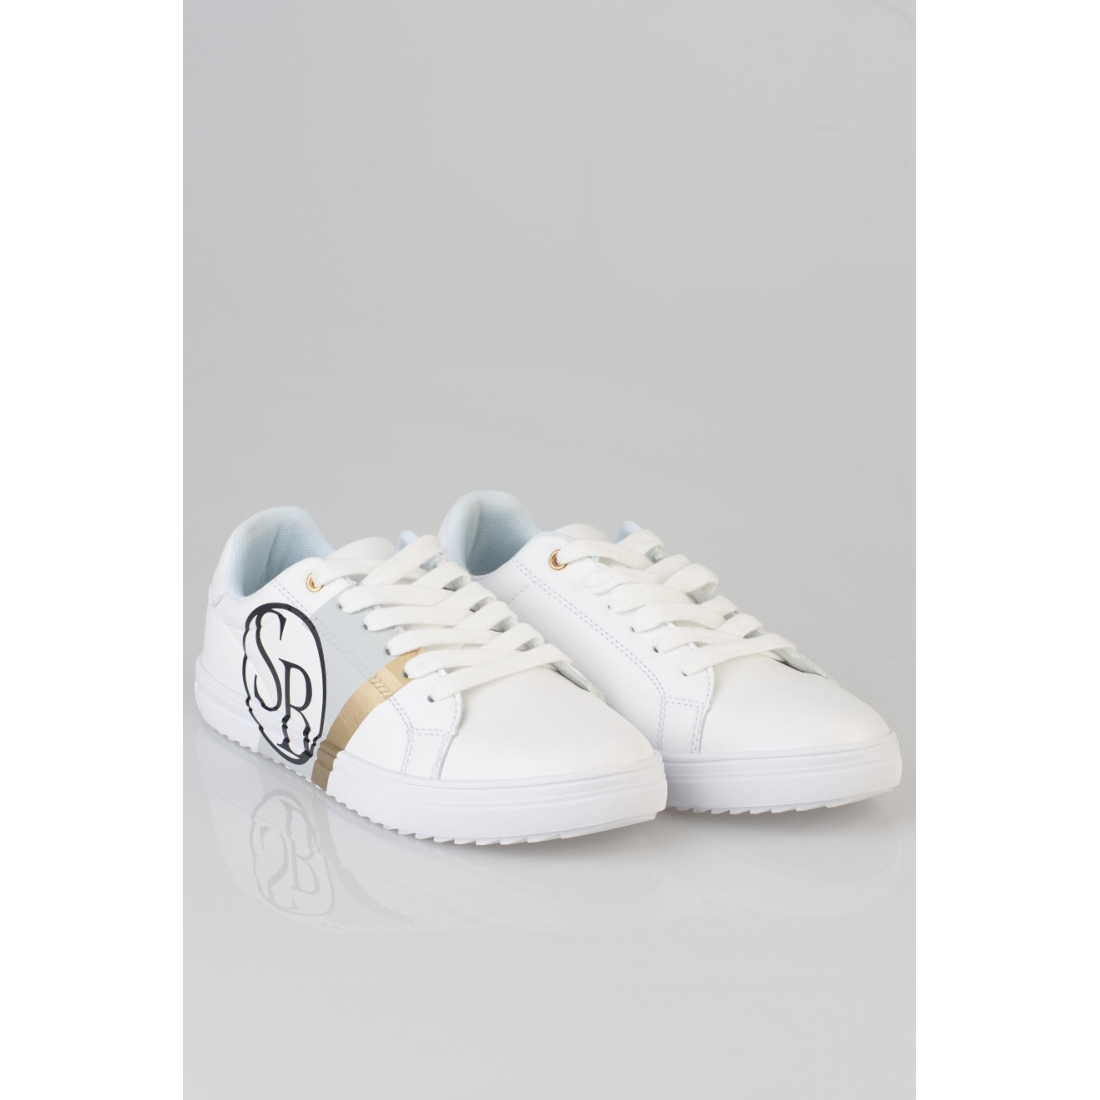 simply styling white sneakers 2